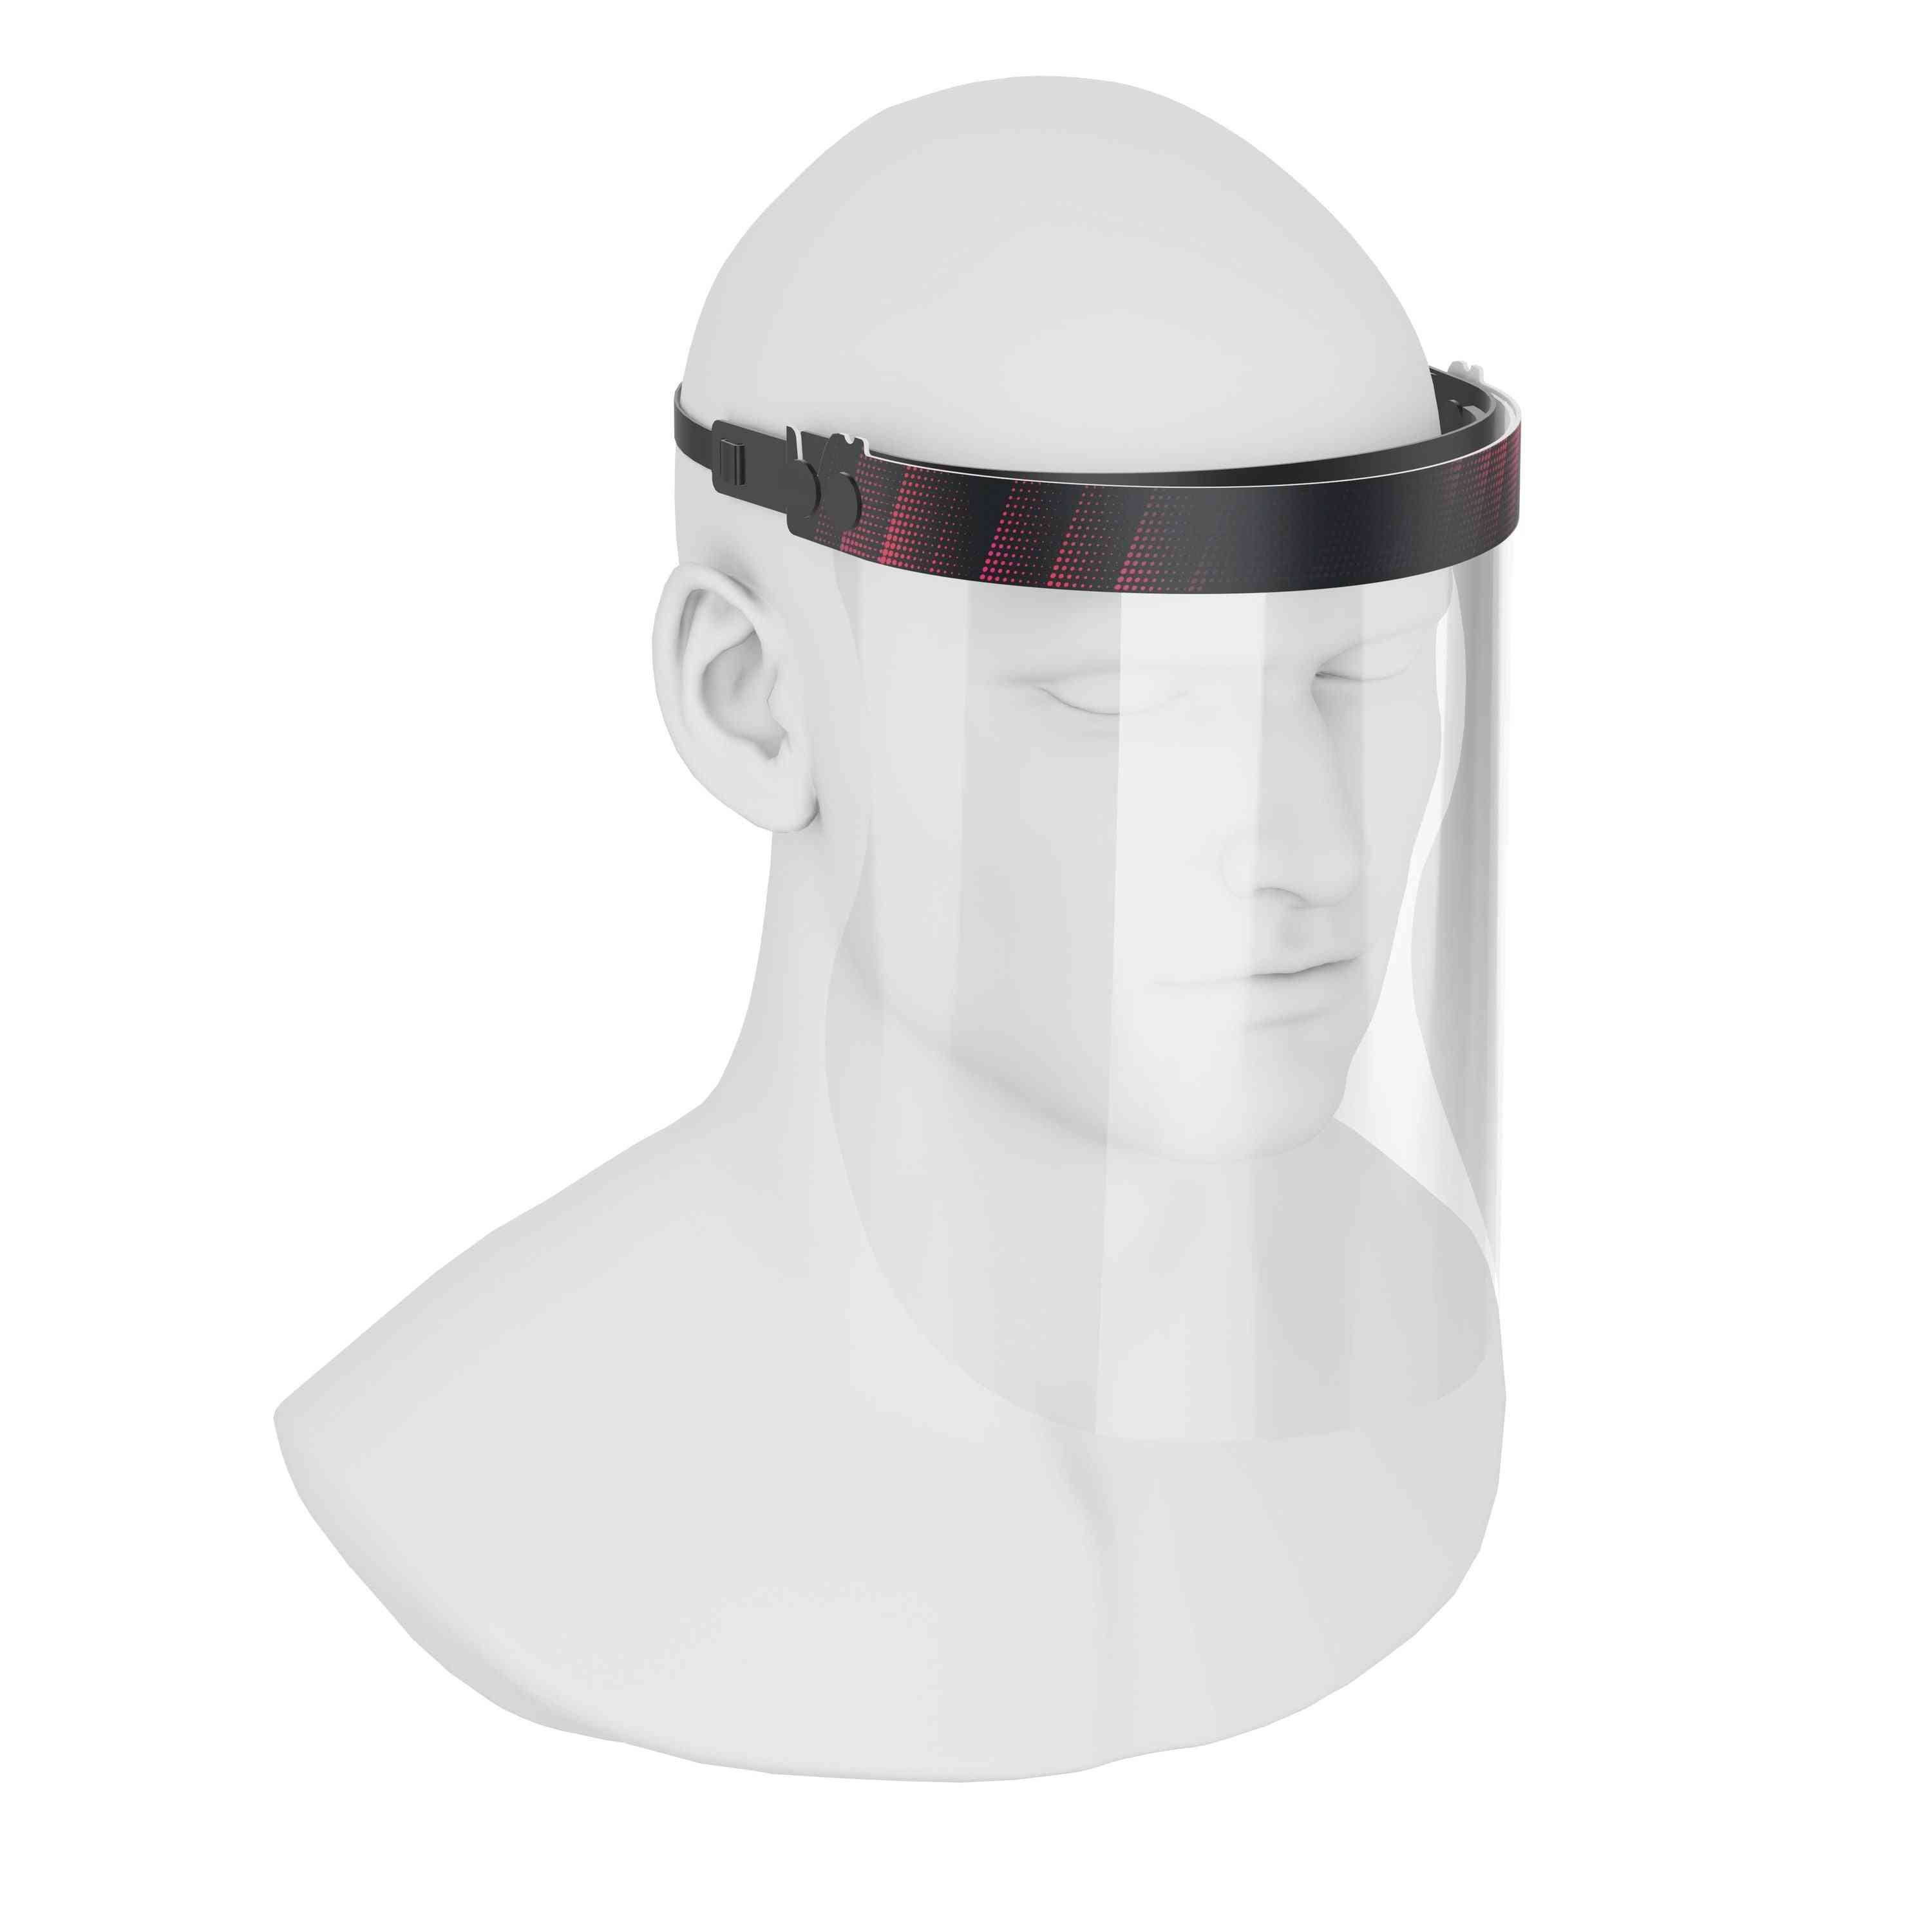 Isolay Face Shield Black & Red